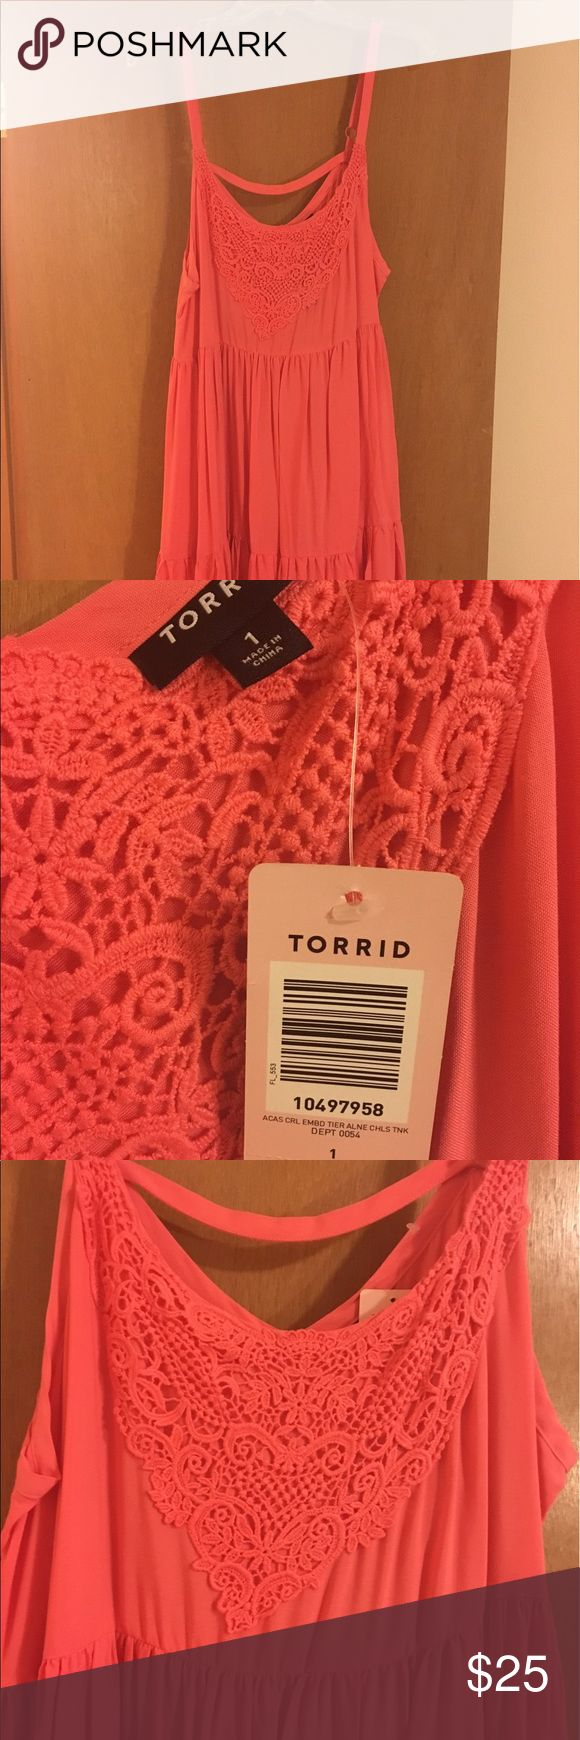 NWT Coral sundress NWT coral sundress with lace collar. Torrid, size 1. torrid Dresses Midi